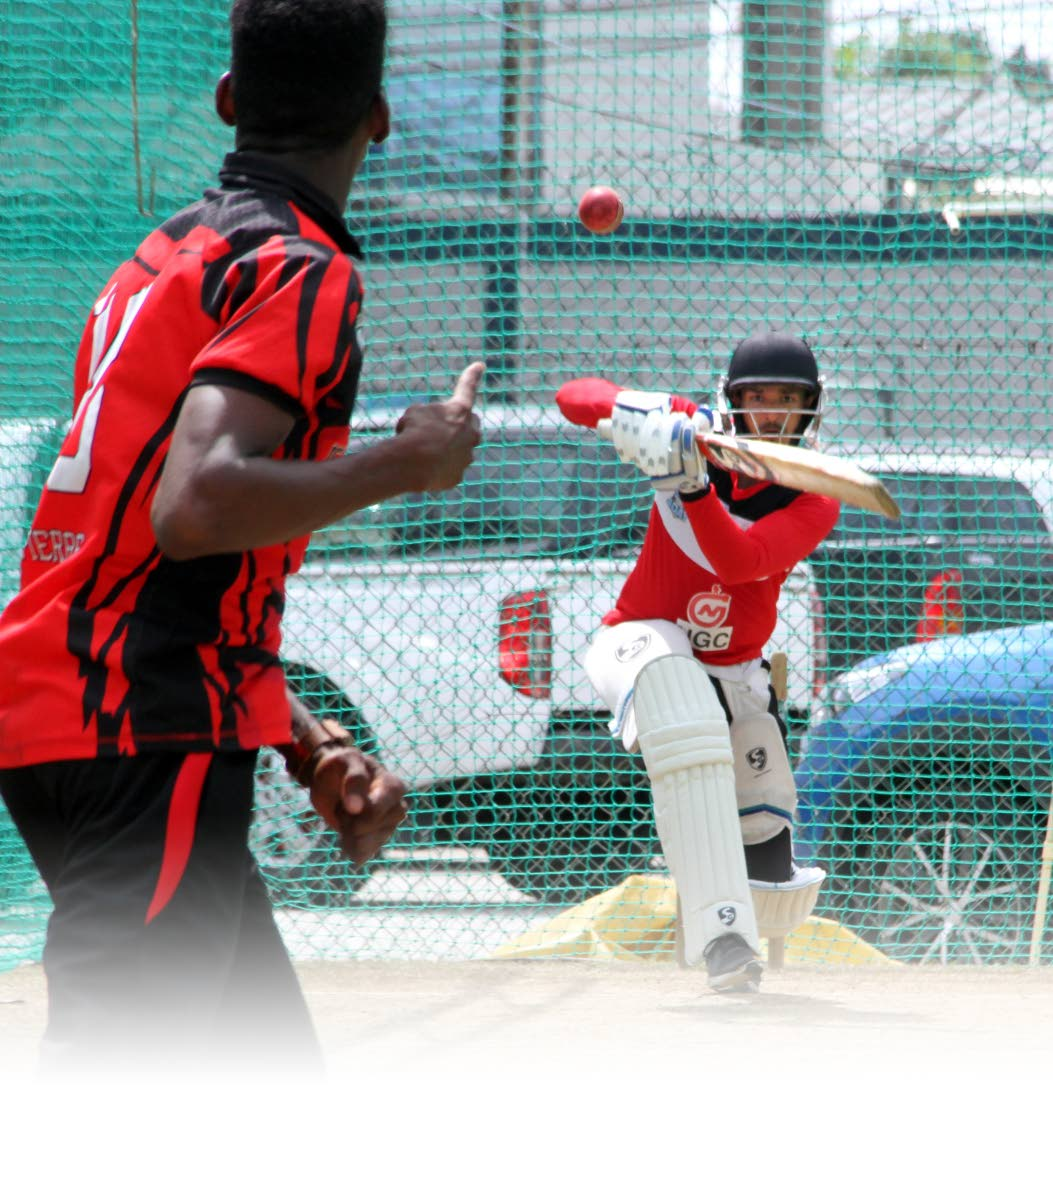 Red Force batsman Amir Jangoo hits a shot during a training session last month at the Queen's Park Oval, St Clair.